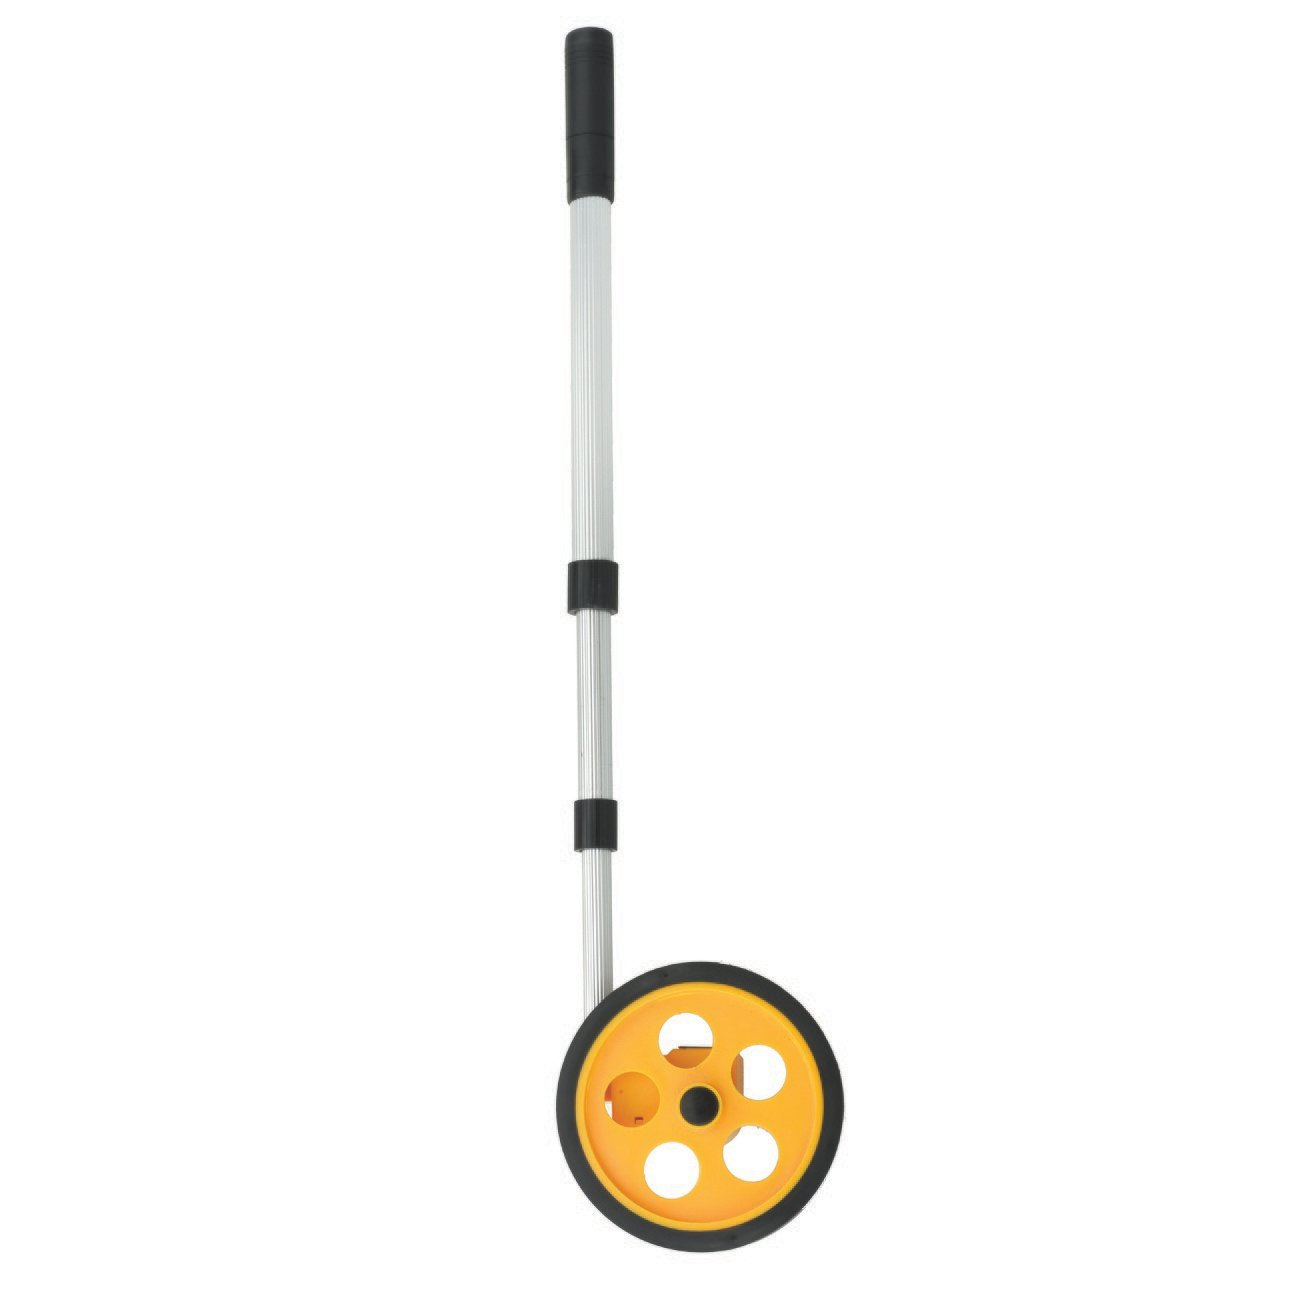 Tooluxe 01594L Rolling Measuring Wheel | 10,000 Feet | Large LCD Display | Telescoping Handle